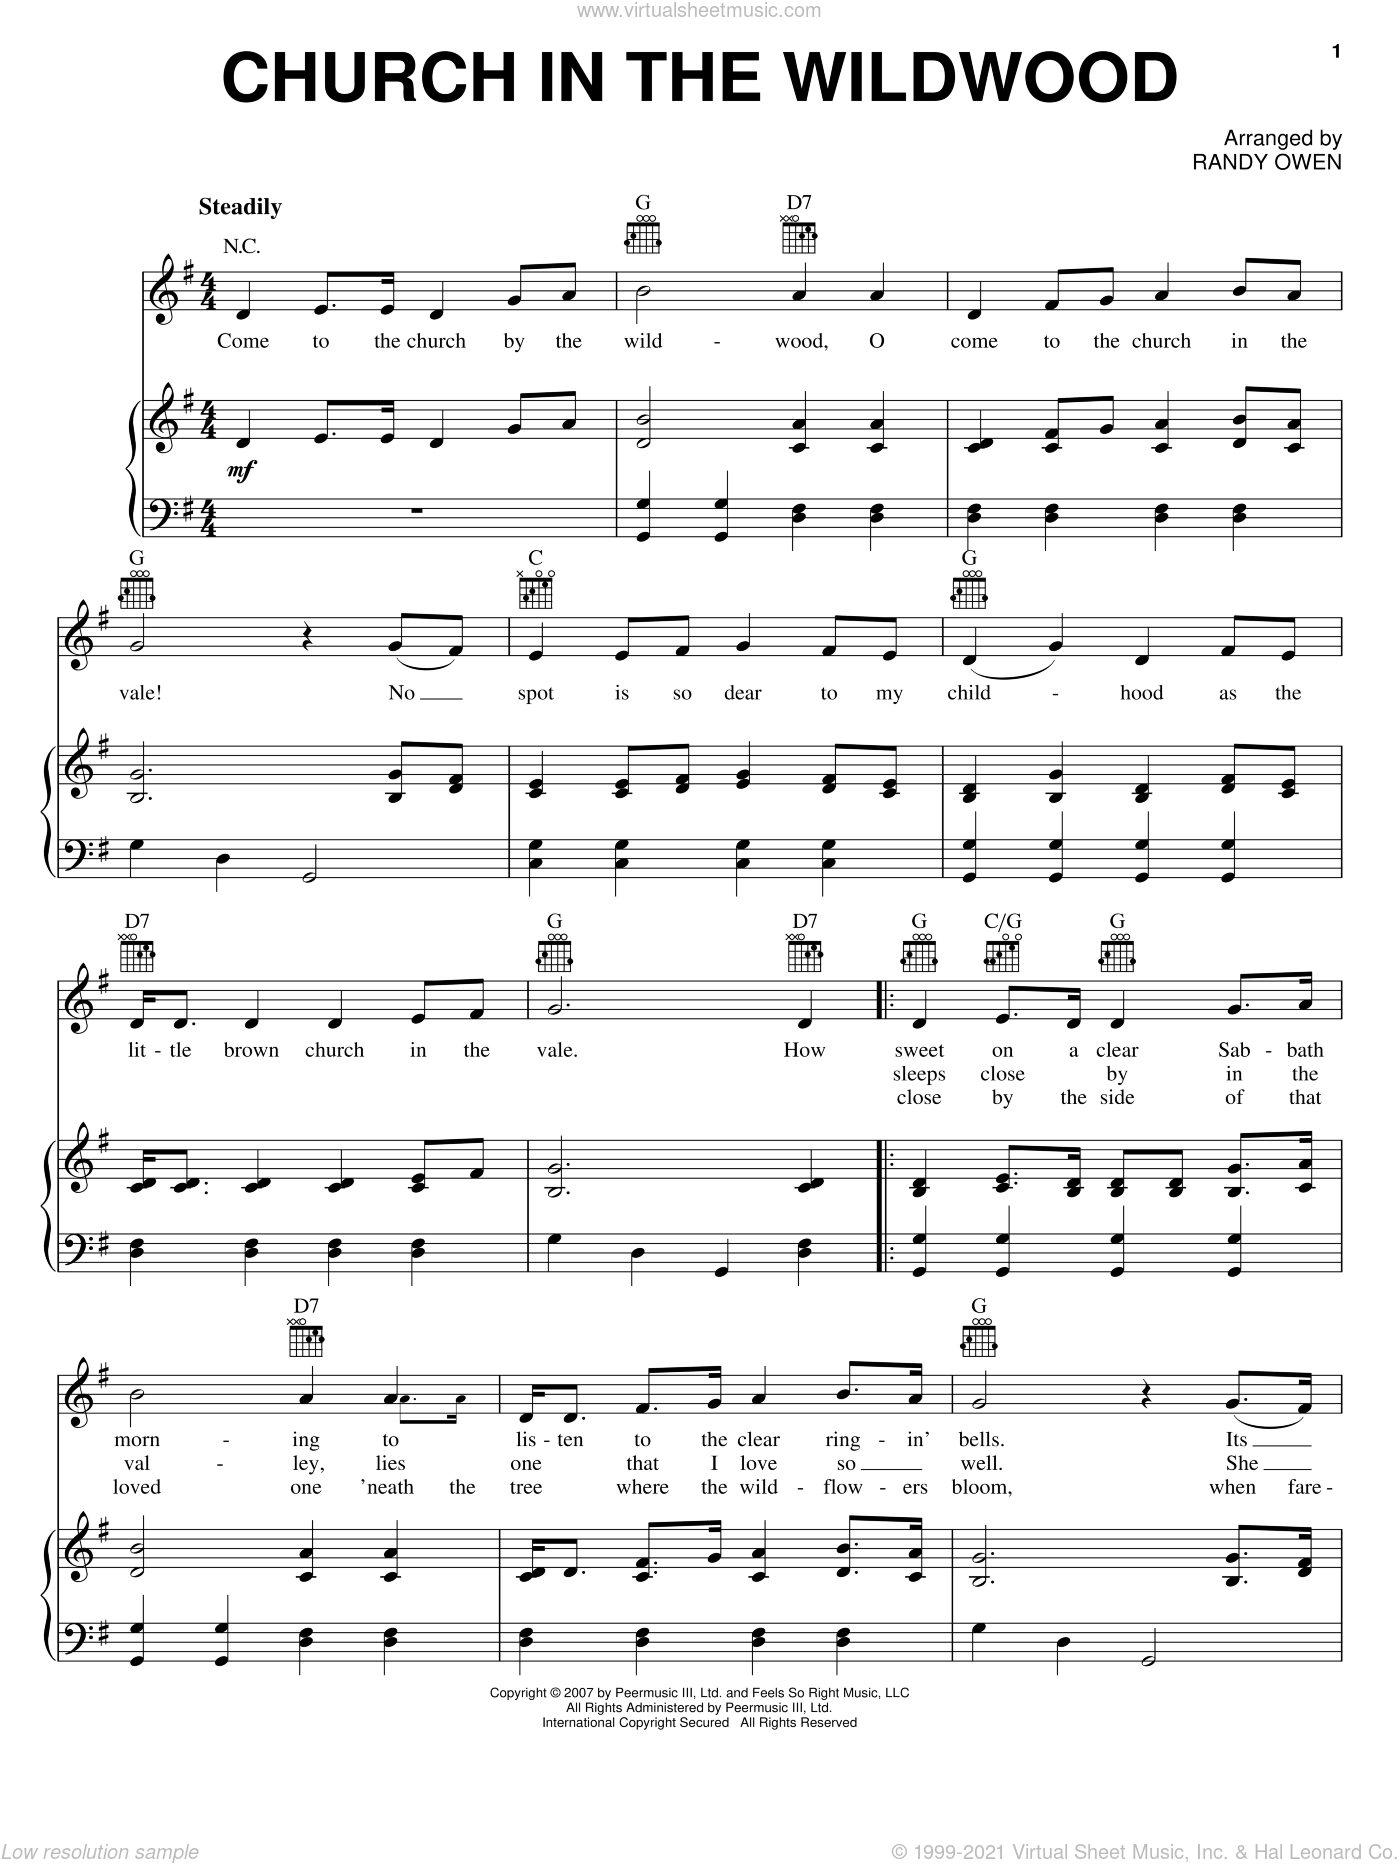 Church In The Wildwood sheet music for voice, piano or guitar by Randy Owen